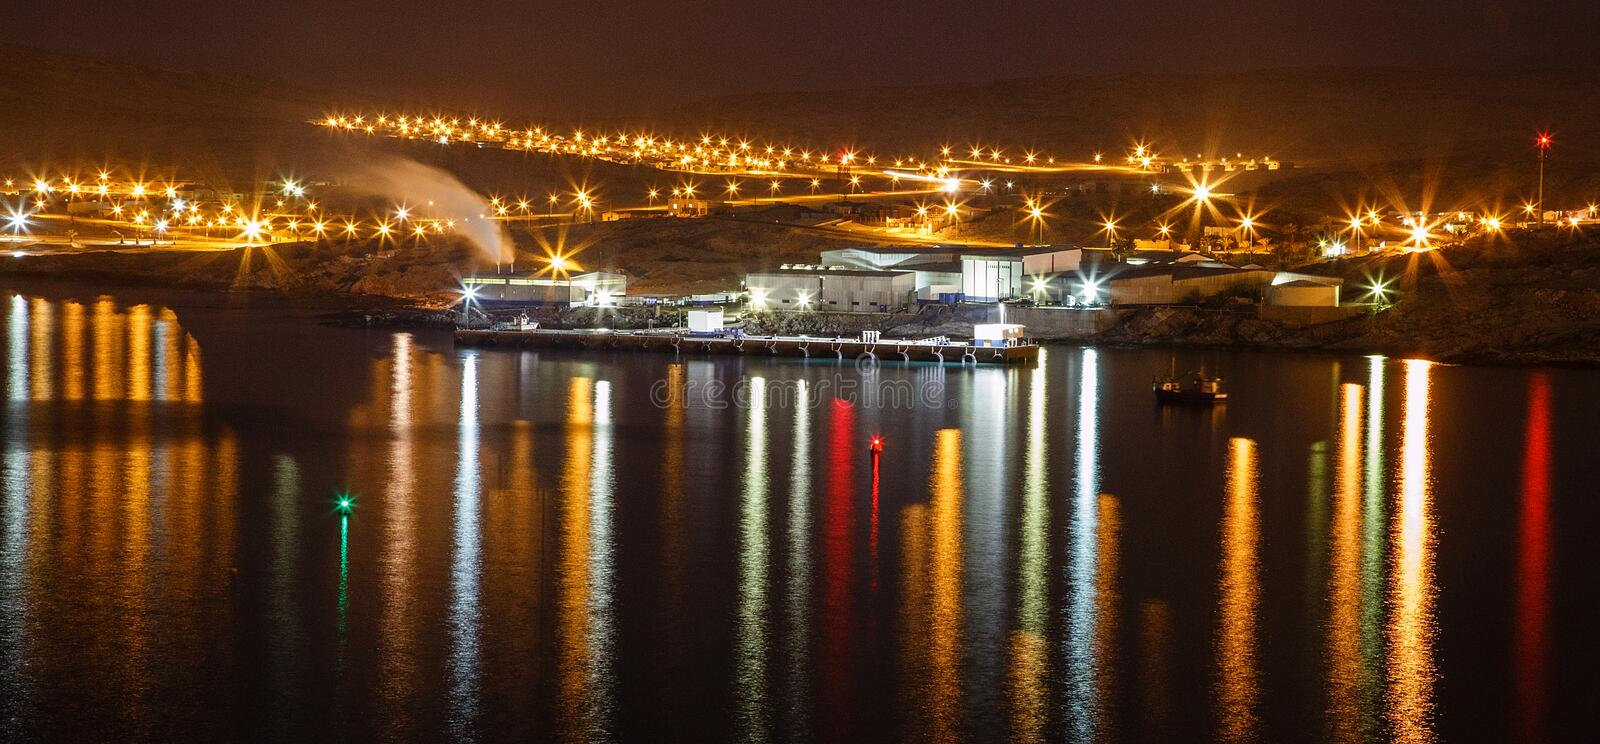 Lüderitz harbour lights. Lüderitz is a harbour town in southwest Namibia, lying on one of the least hospitable coasts in Africa. It is a port developed royalty free stock photography